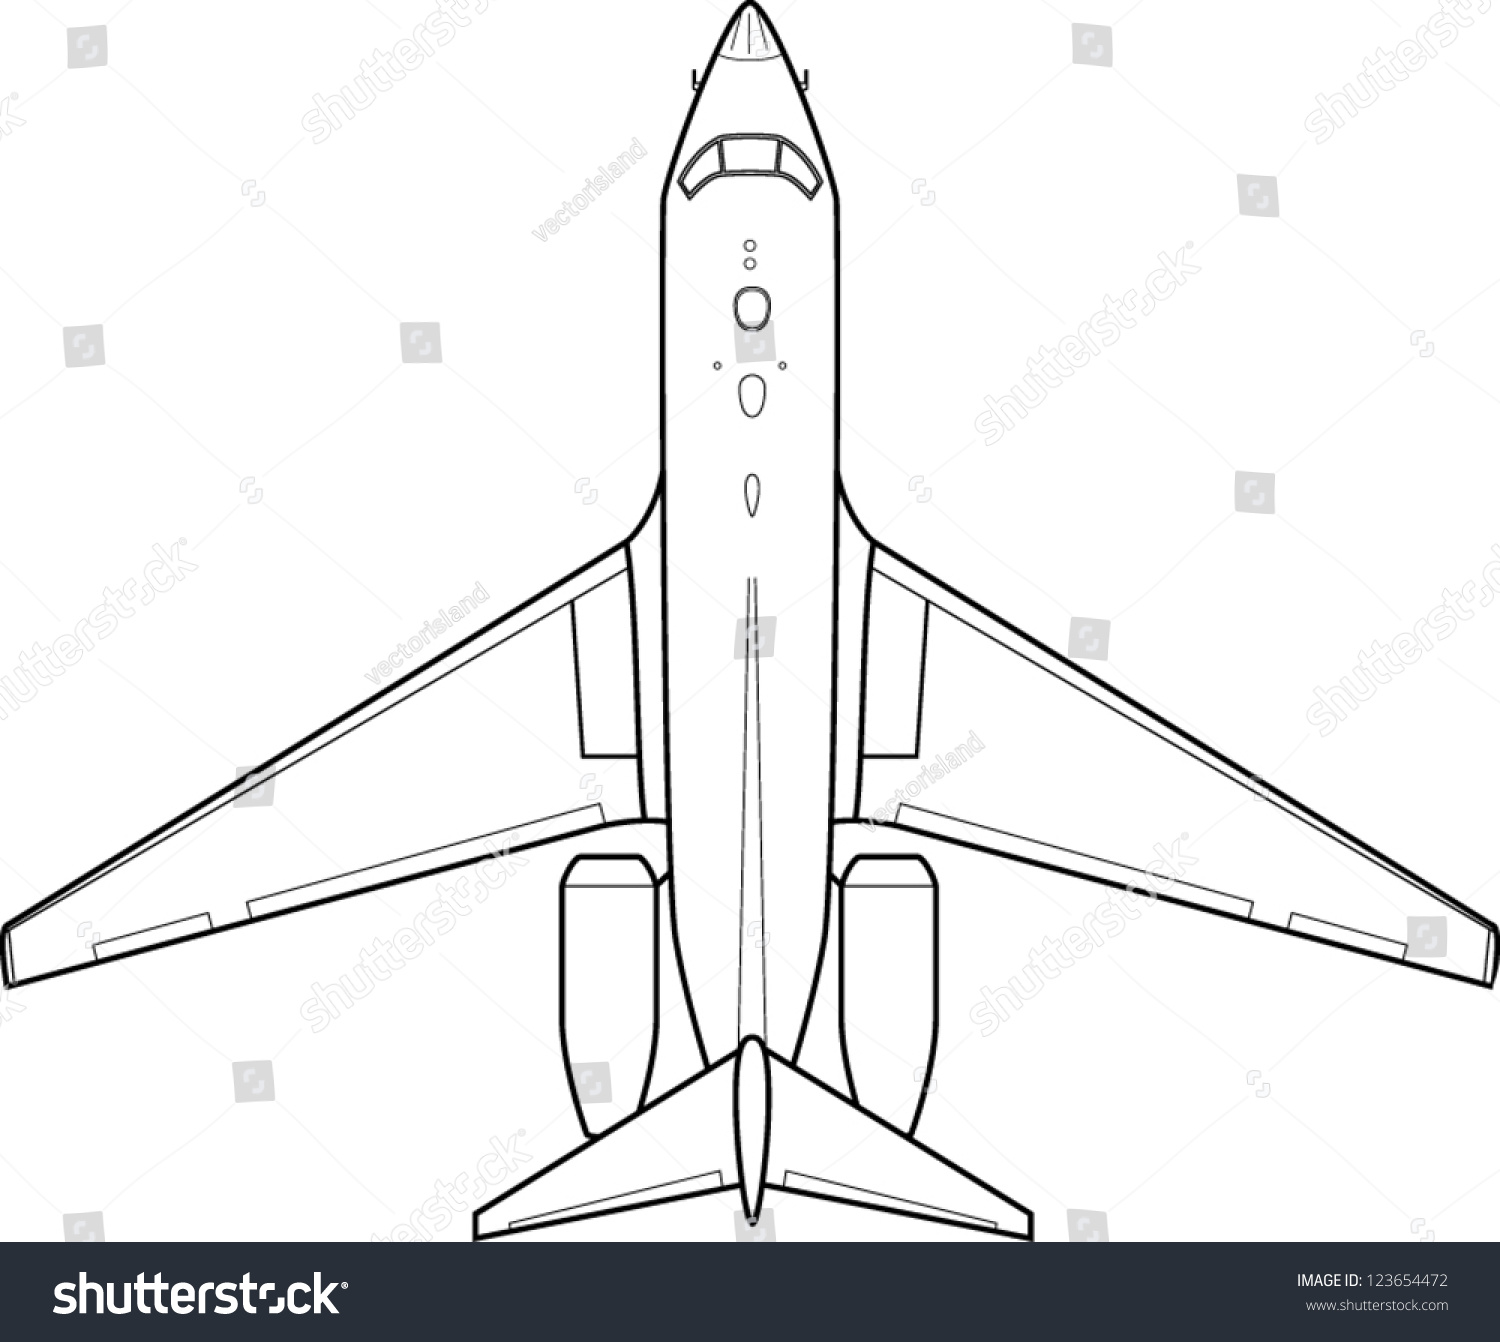 Line Drawing Airplane : Jet plane line art stock vector shutterstock